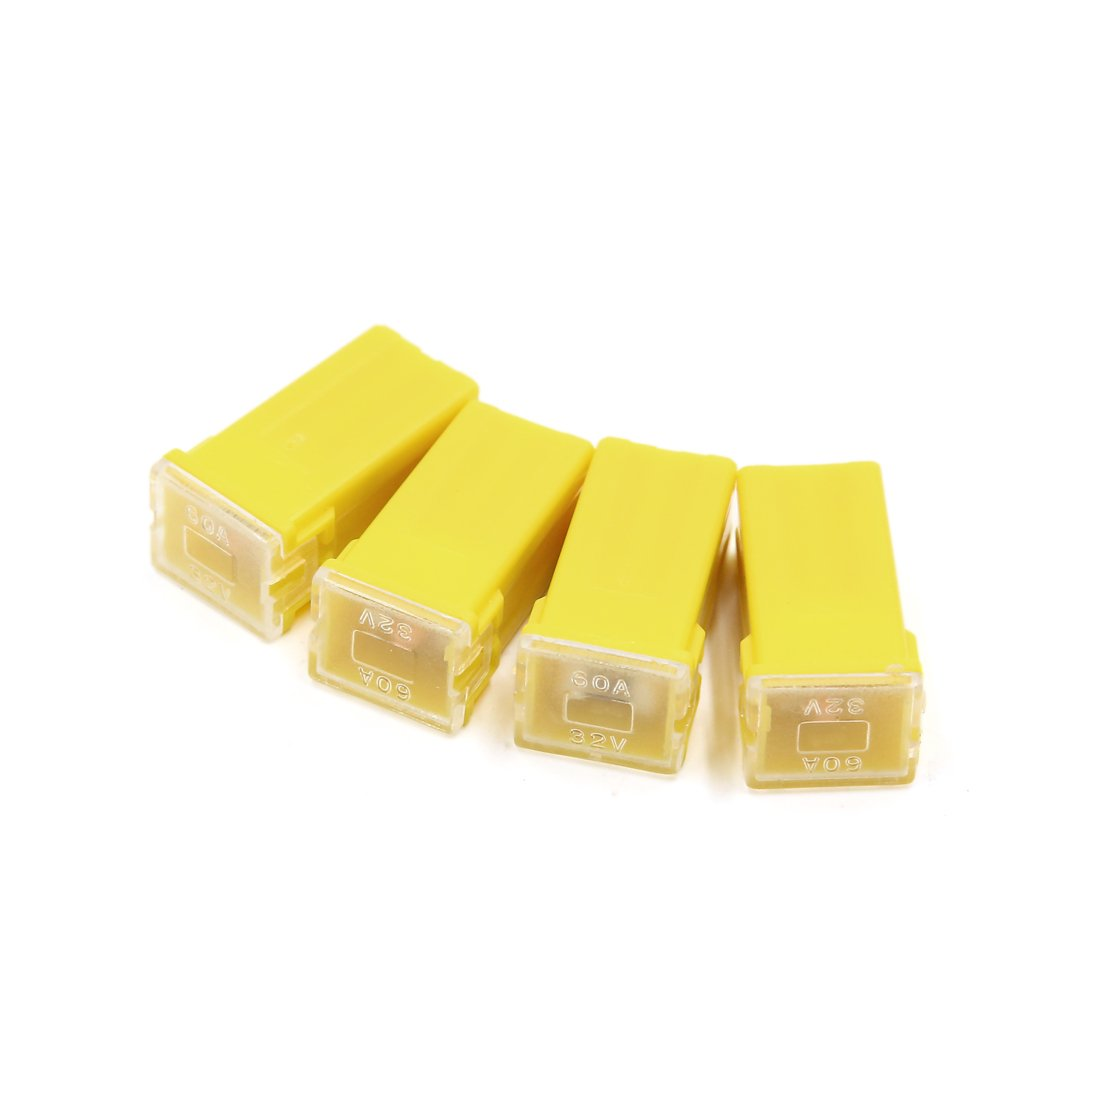 uxcell Vehicle Car Plastic Shell Straight Female Terminal Push in Blade Cartridge PAL Fuse 40Amp 32V Green 5pcs a14053000ux0265